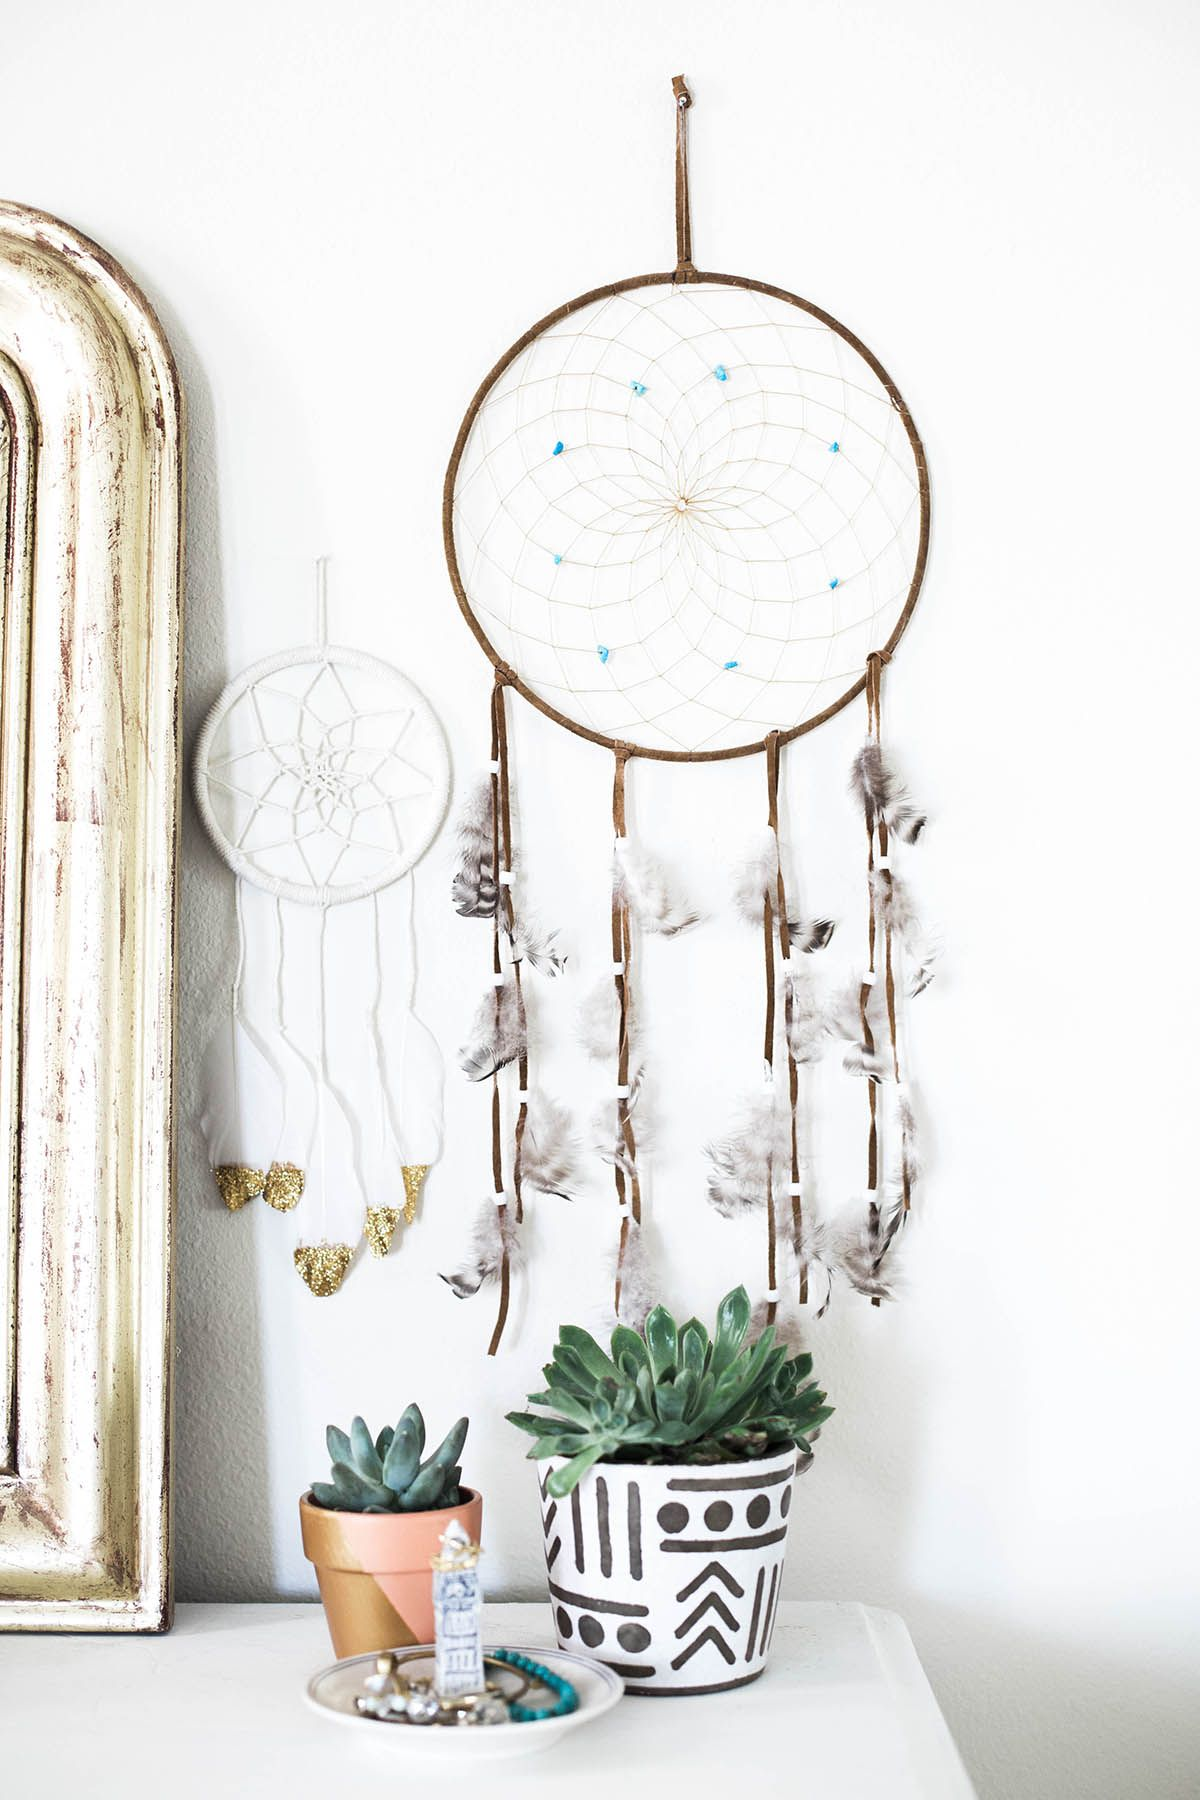 Dresser Decor Idea Bright Bohemian Bedroom Dream Catchers Succulents Urban Outfitters Ceramic Plant Pot Home Styling